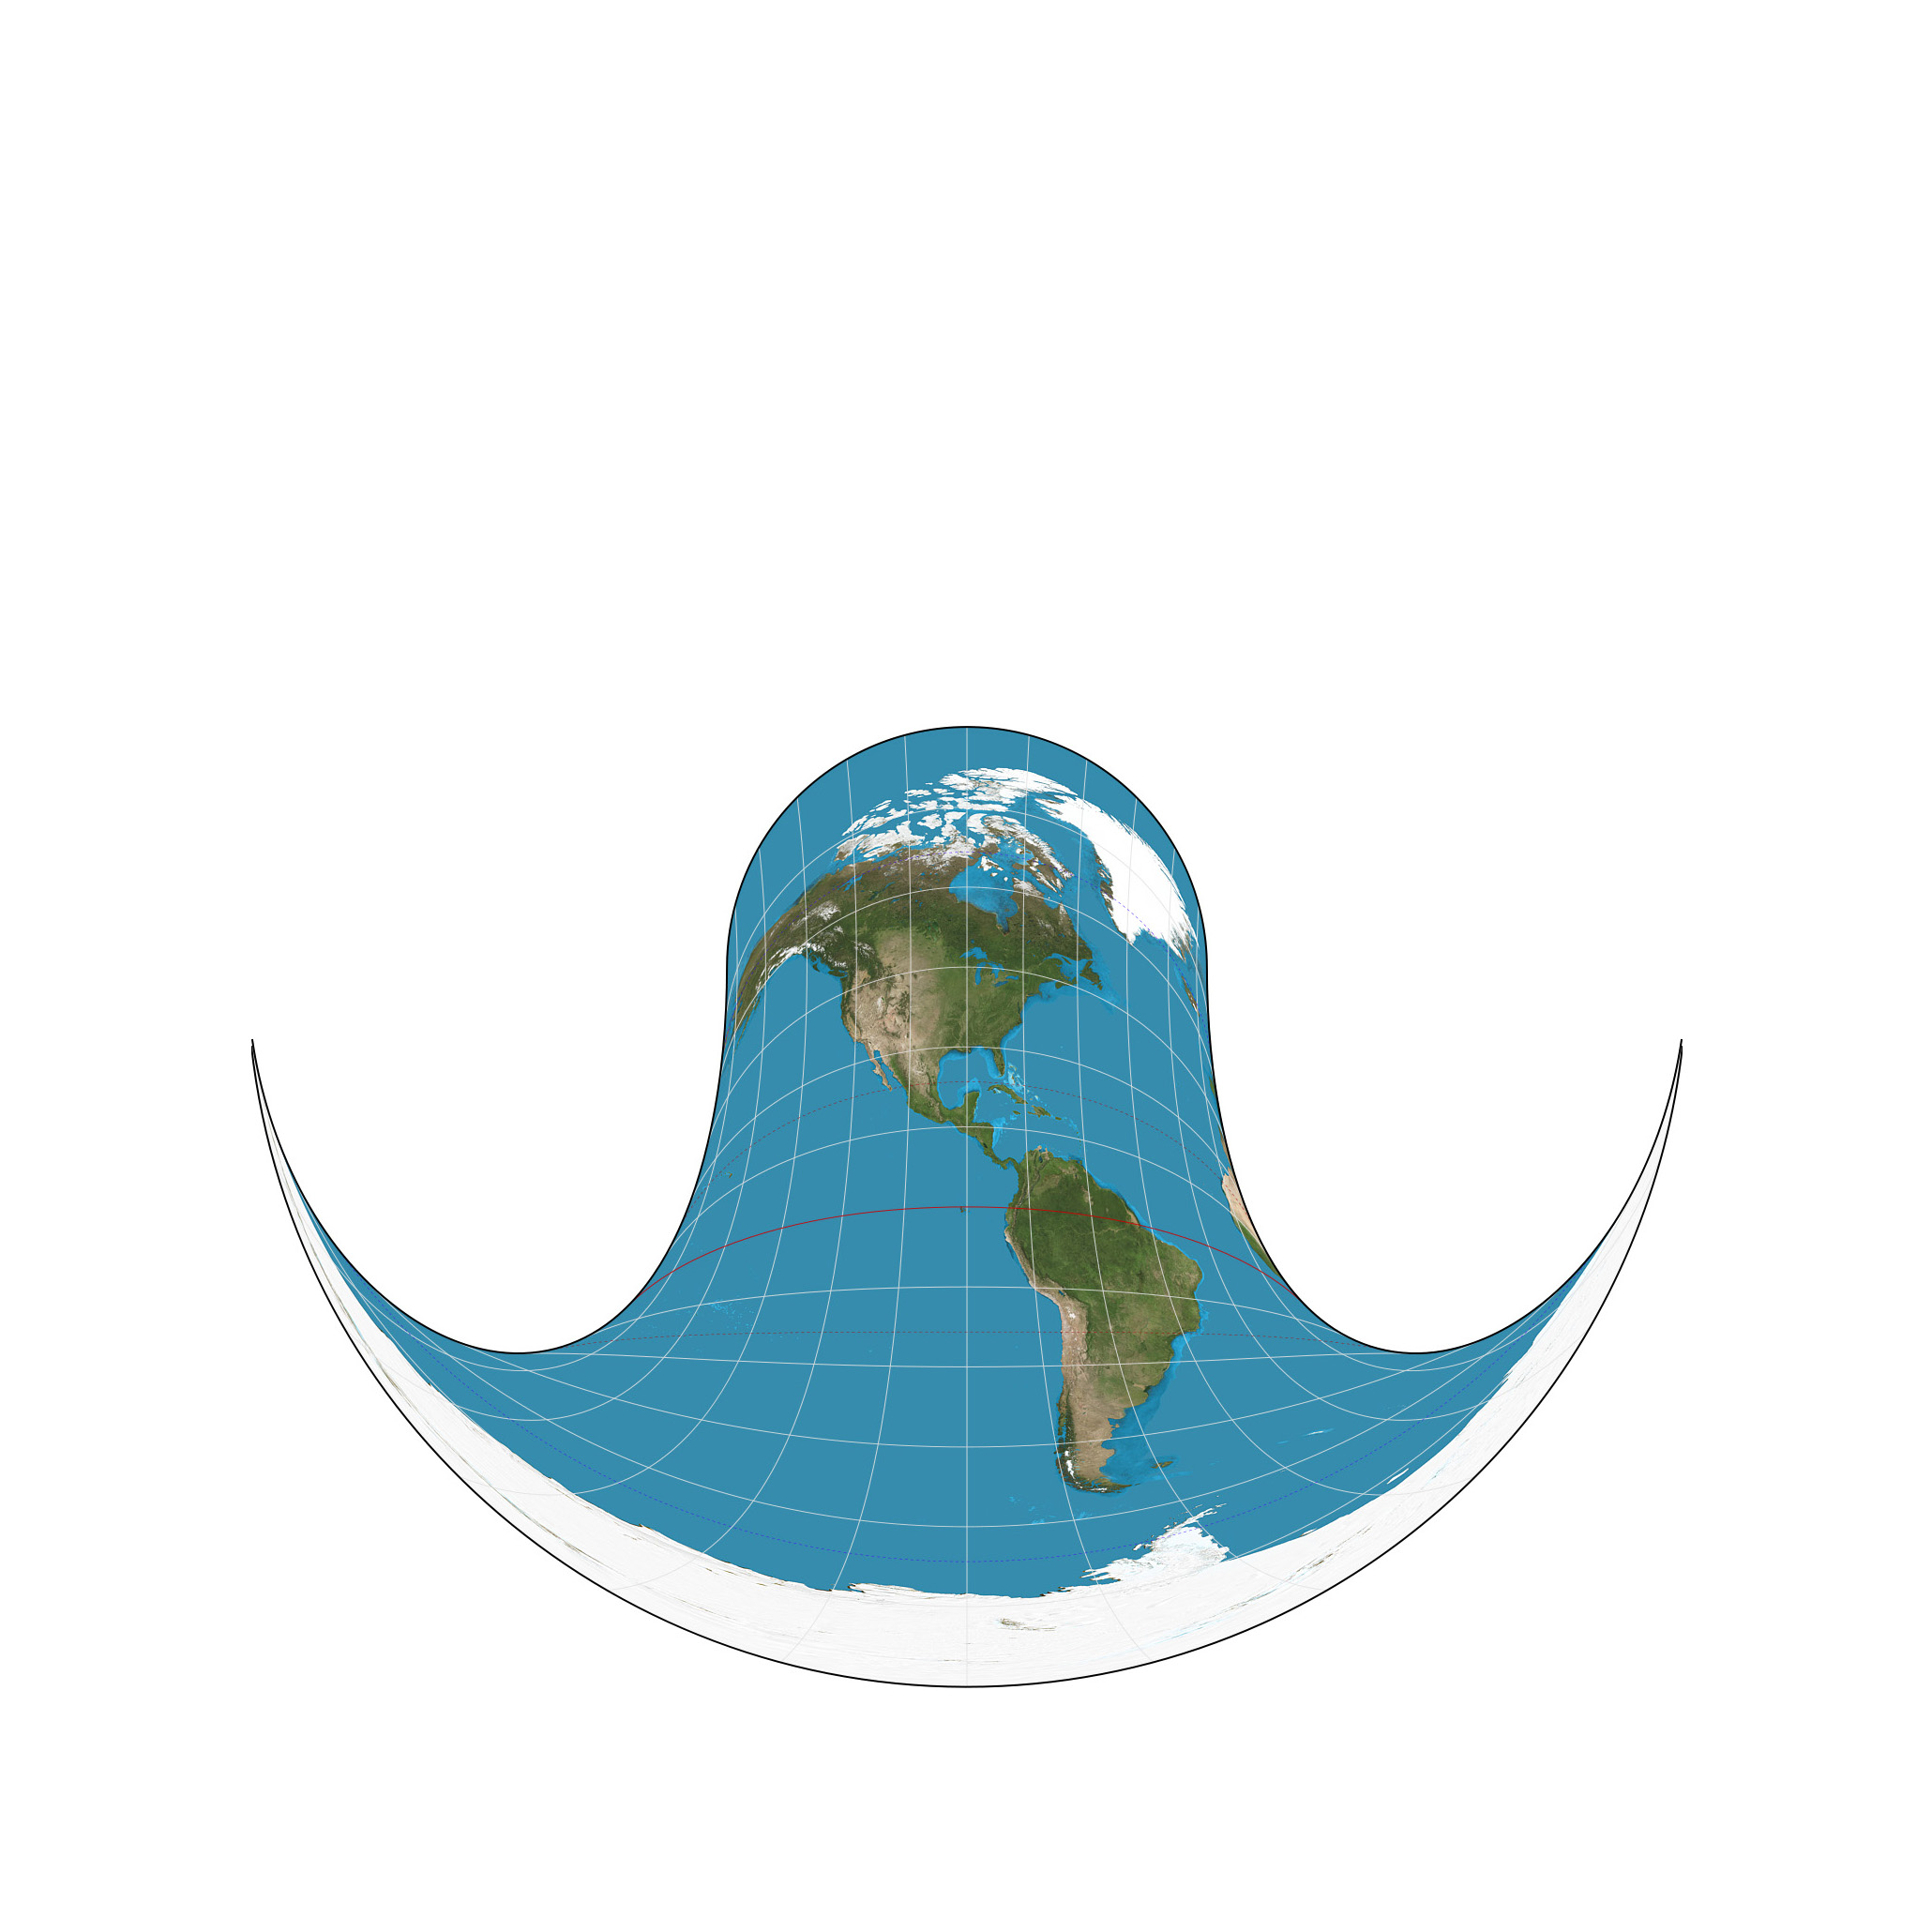 List of map projections - Wikipedia